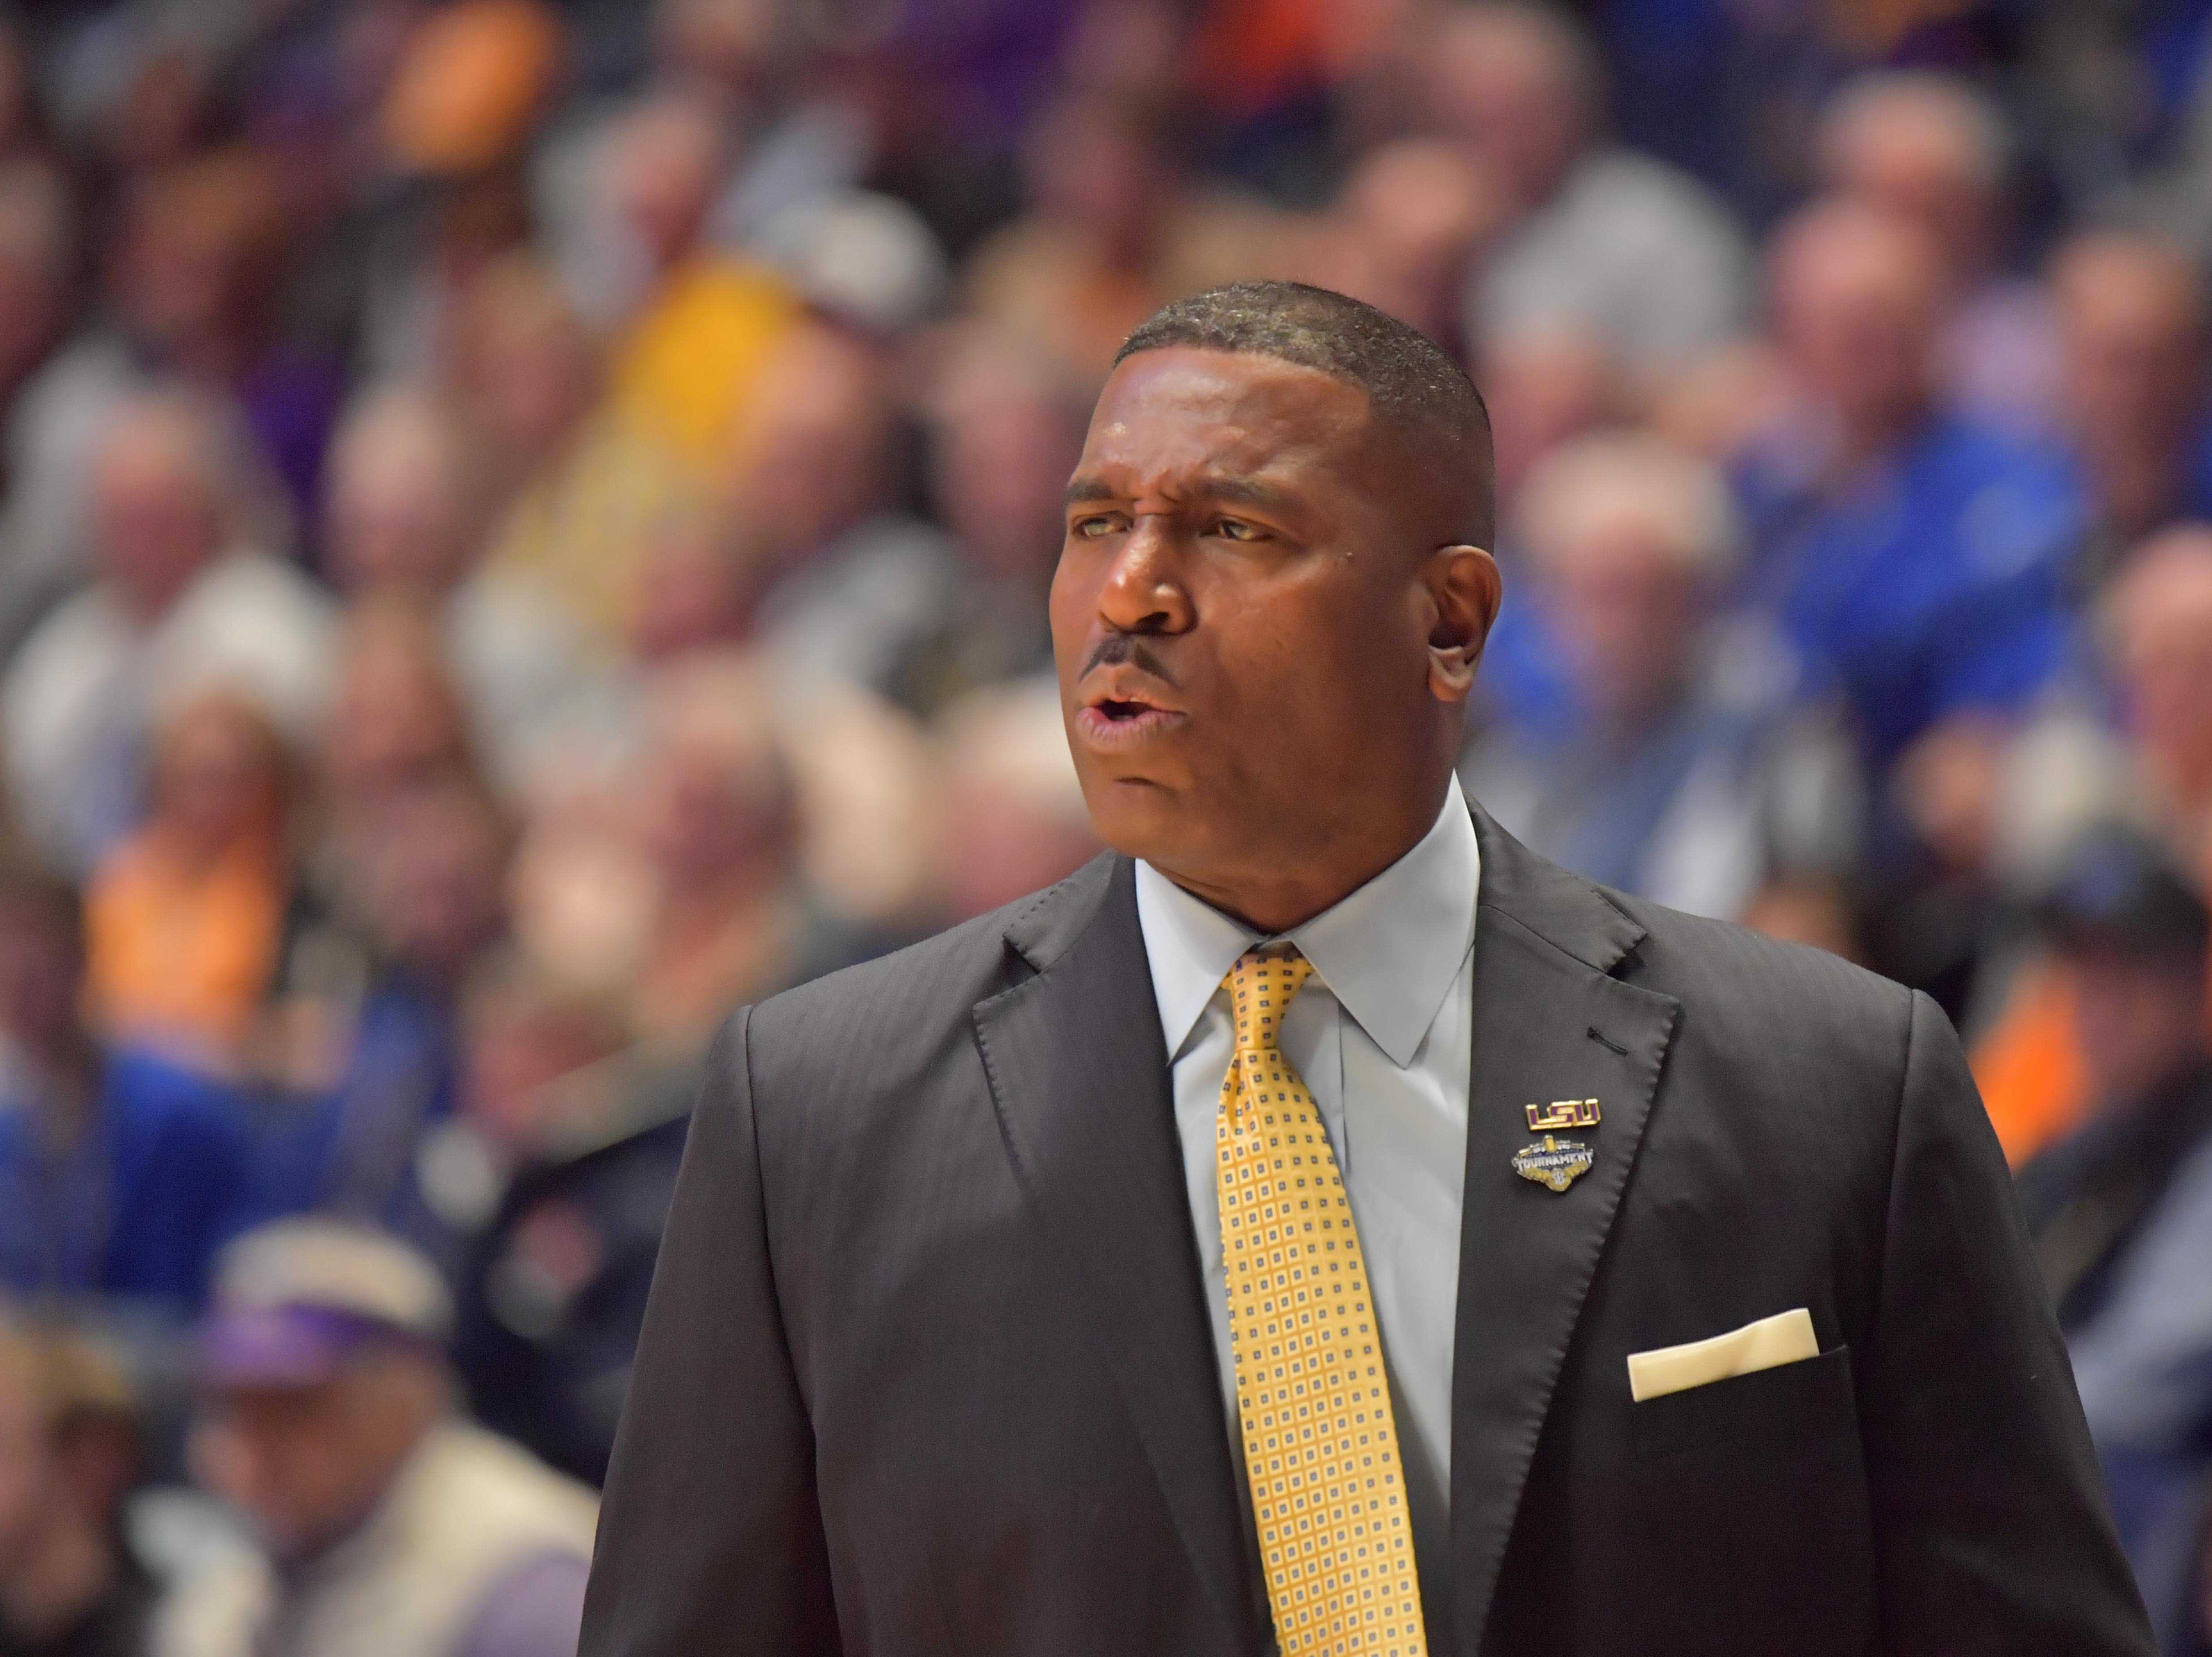 Mar 15, 2019; Nashville, TN, USA; LSU Tigers interim head coach Tony Benford during the first half of game seven against the Florida Gators in the SEC conference tournament at Bridgestone Arena. Mandatory Credit: Jim Brown-USA TODAY Sports